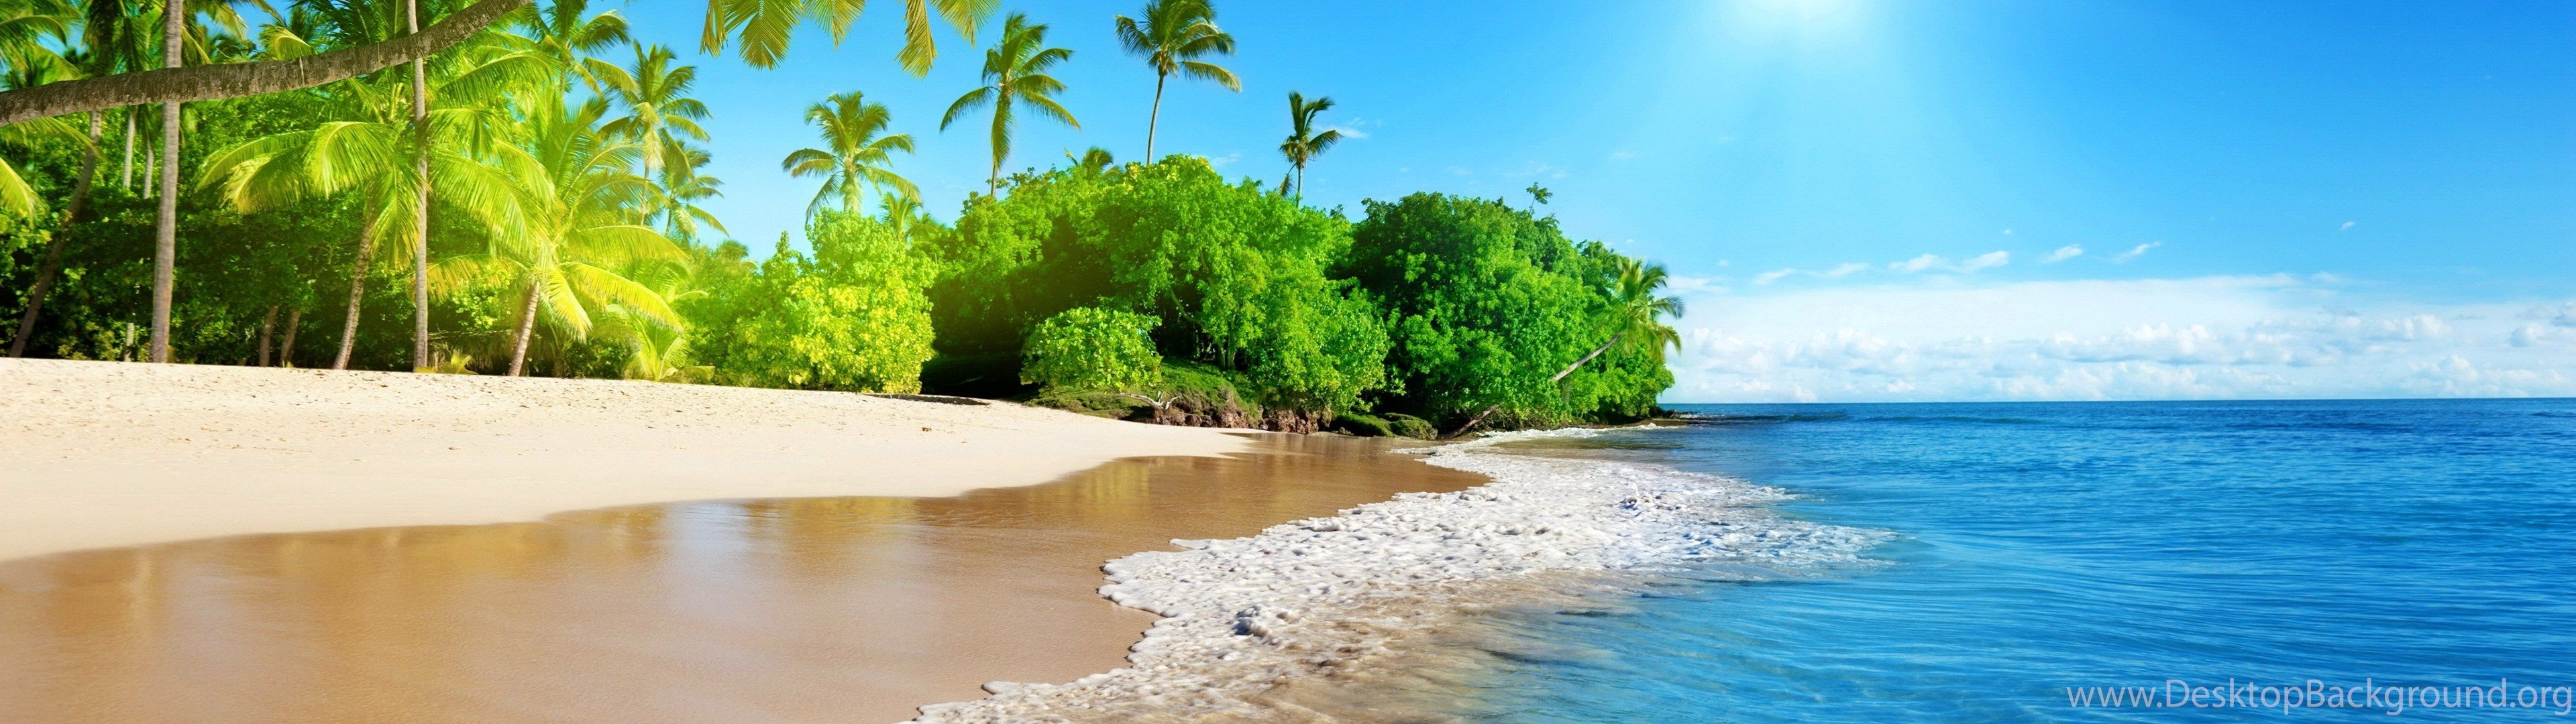 3840x1080 Panoramic Beach Wallpapers HD Resolution : Nature Wallpapers ...